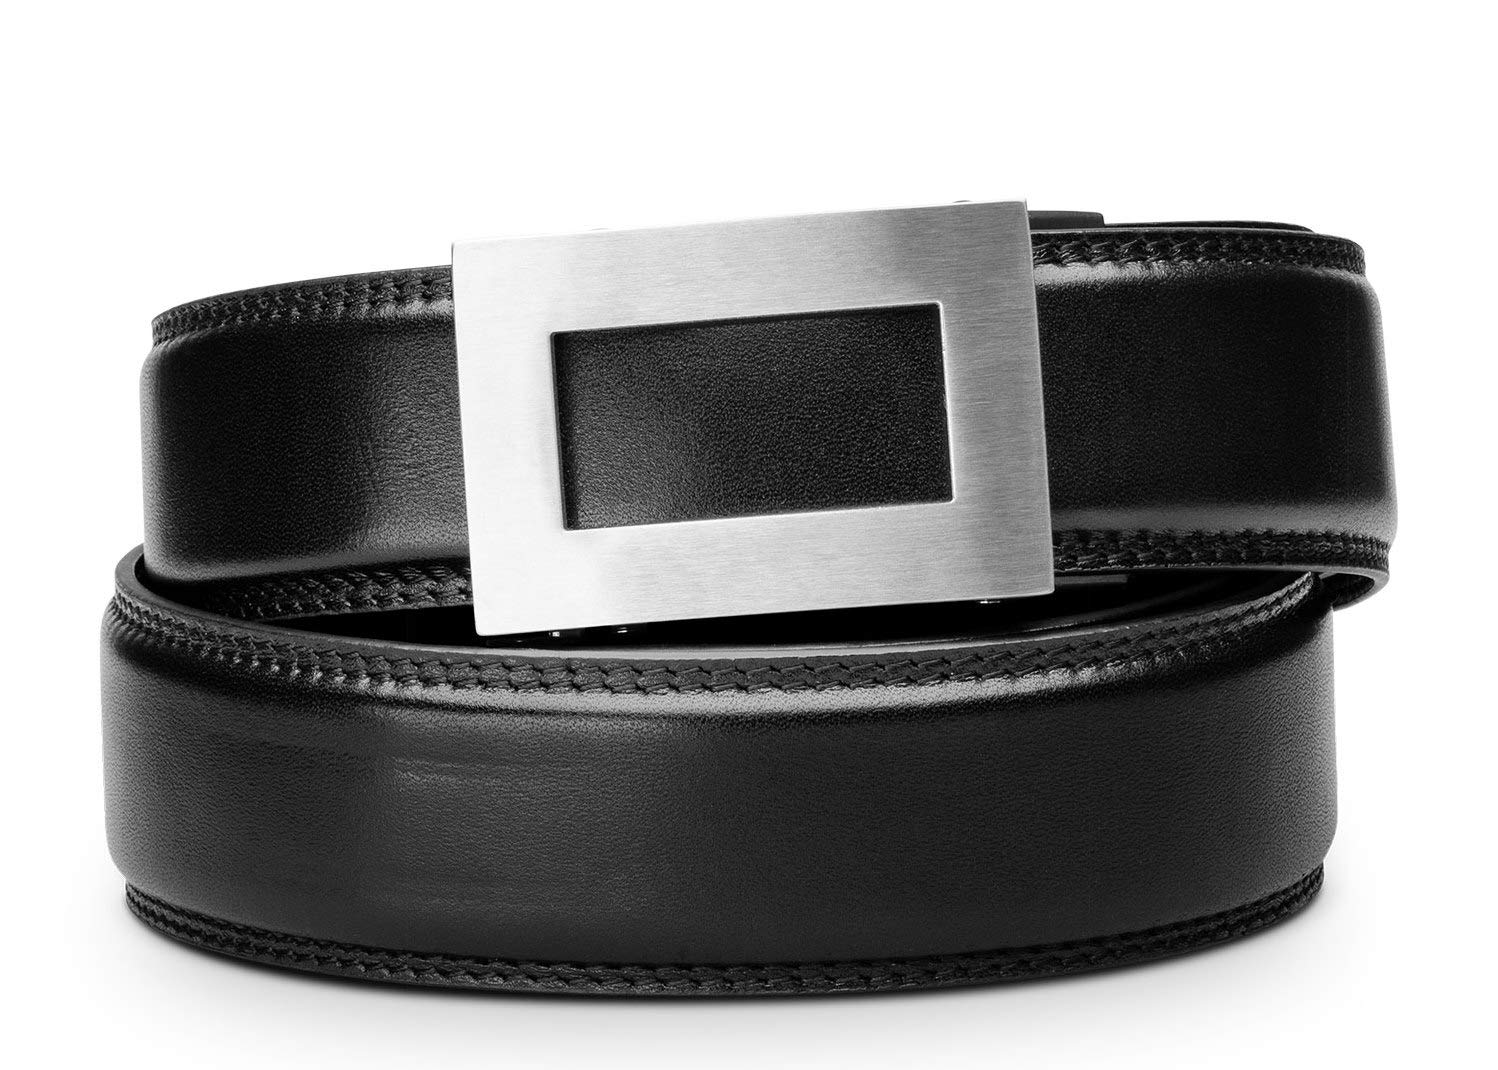 Kore Men S Full Grain Leather Track Belts Icon Stainless Steel Buckle Enjoy 💰25% off store discounts and find the latest and greatest kore essentials ads, deals and sales in nov. kore men s full grain leather track belts icon stainless steel buckle